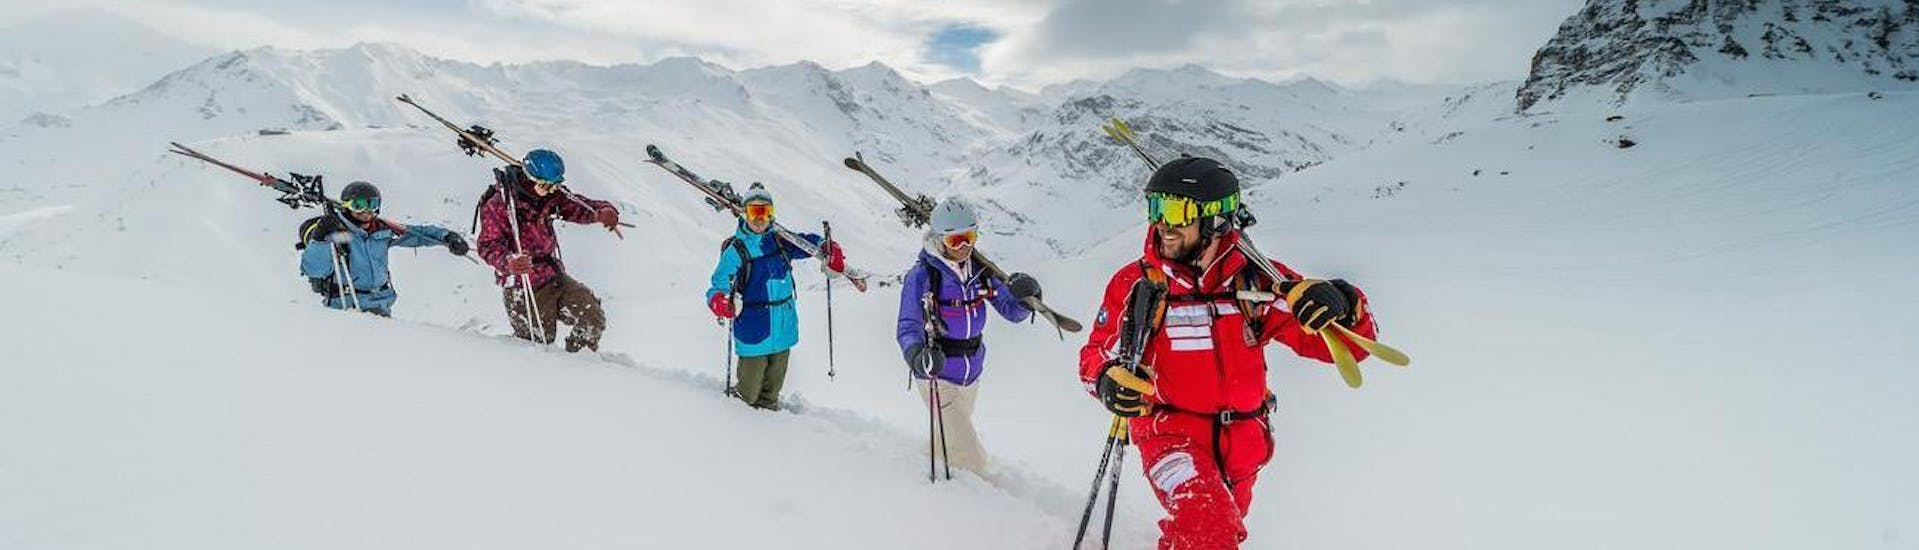 A group of ski enthusiasts shares the passion for off-piste skiing during the Private Off-Piste Skiing Lessons - All Levels while exploring the new areas with a professional instructor from ESF Val d'Isère.